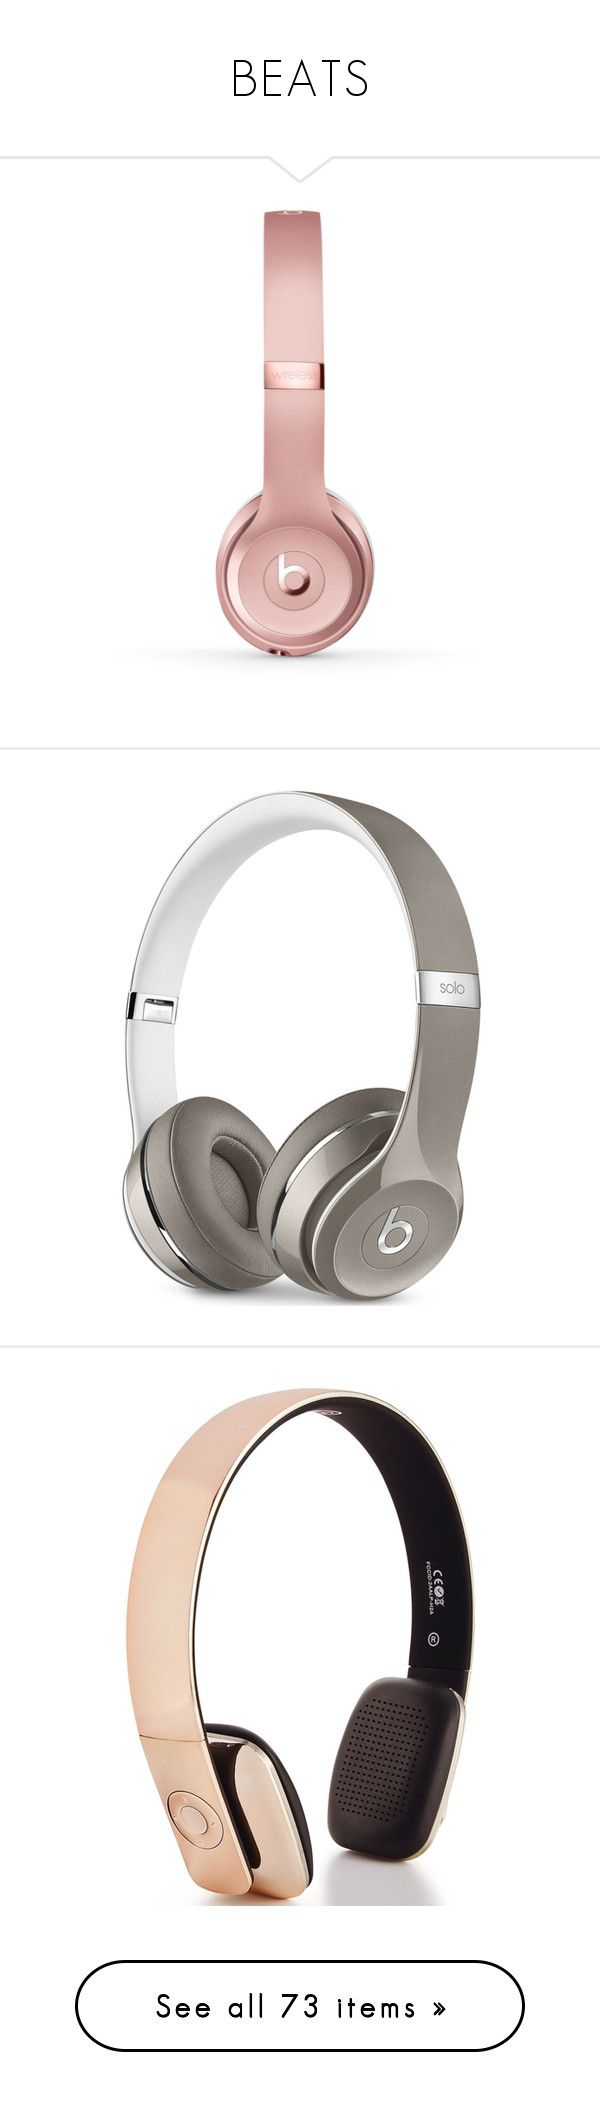 """""""BEATS"""" by missk2blue ❤ liked on Polyvore featuring accessories, tech accessories, beats by dr dre headphones, beats by dr. dre, luxe silver, metallic gold, wraps headphones, electronics, fillers and music"""